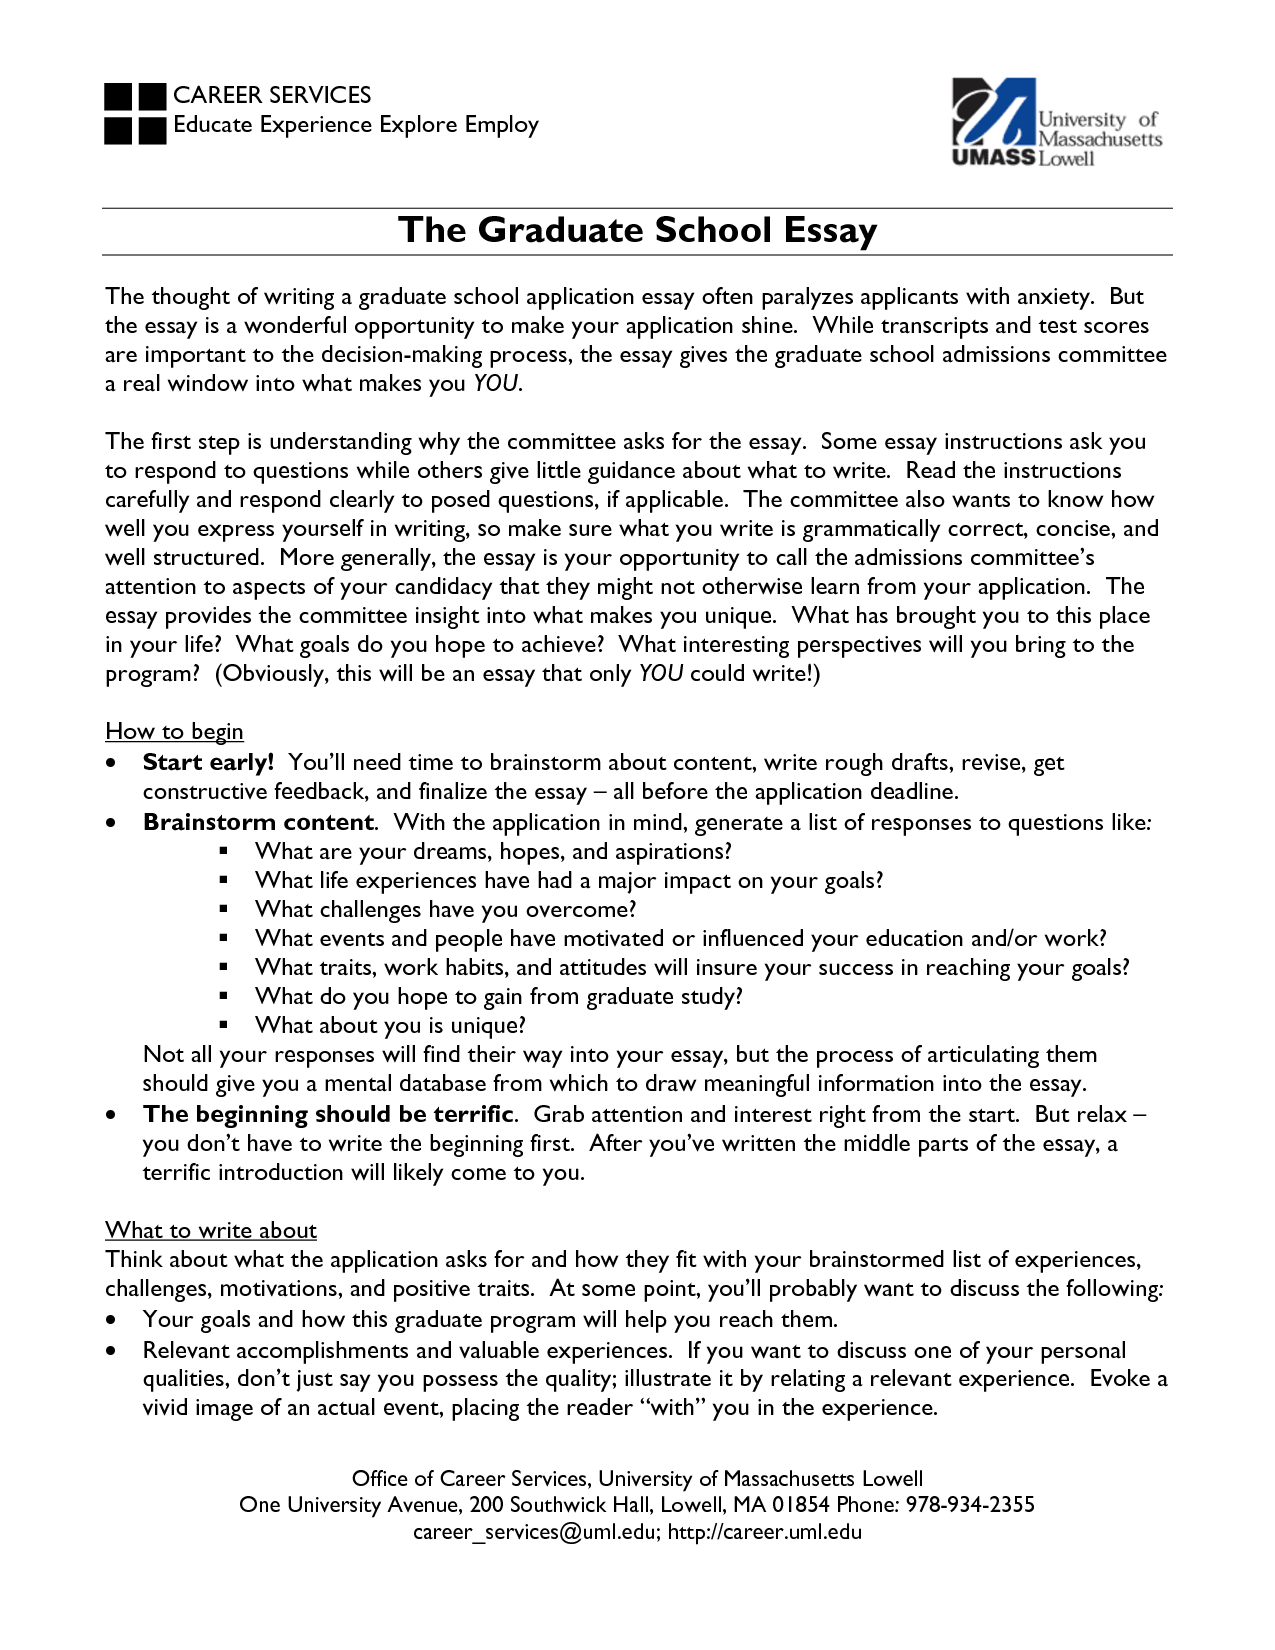 writing grad school application essays Essay writing information on gradschoolscom the leading site for accredited colleges and universities offering graduate programs and degrees read more on essay writing here.